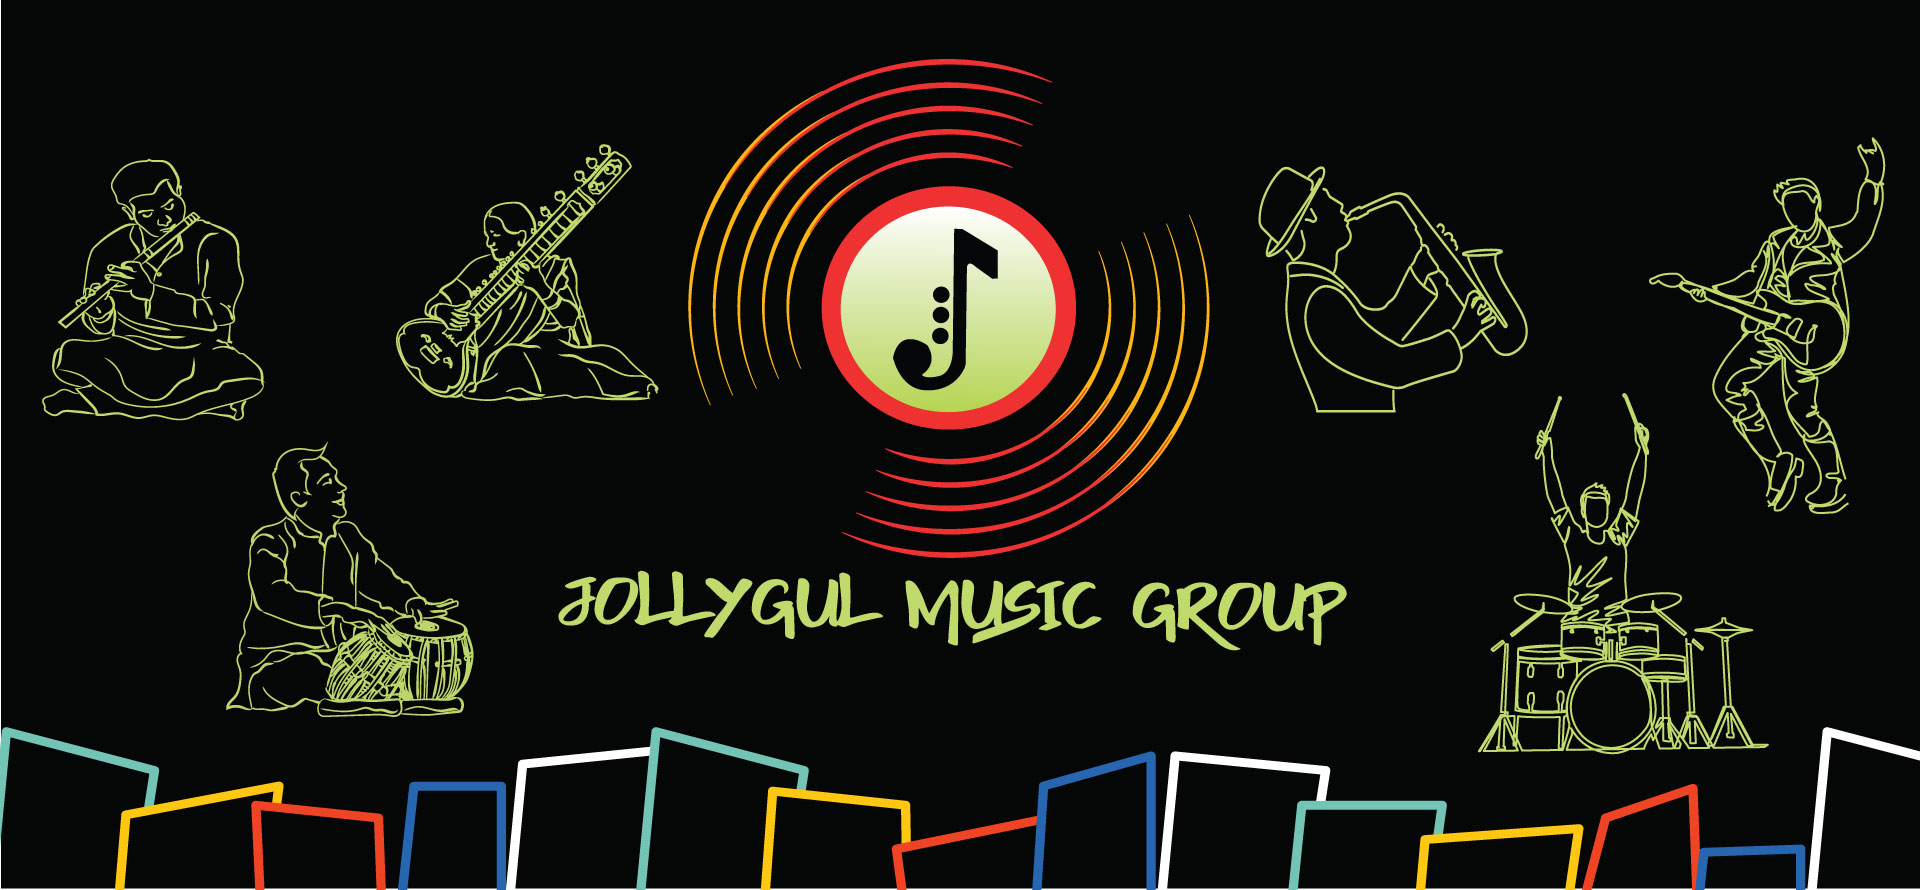 JollyGul Music Group